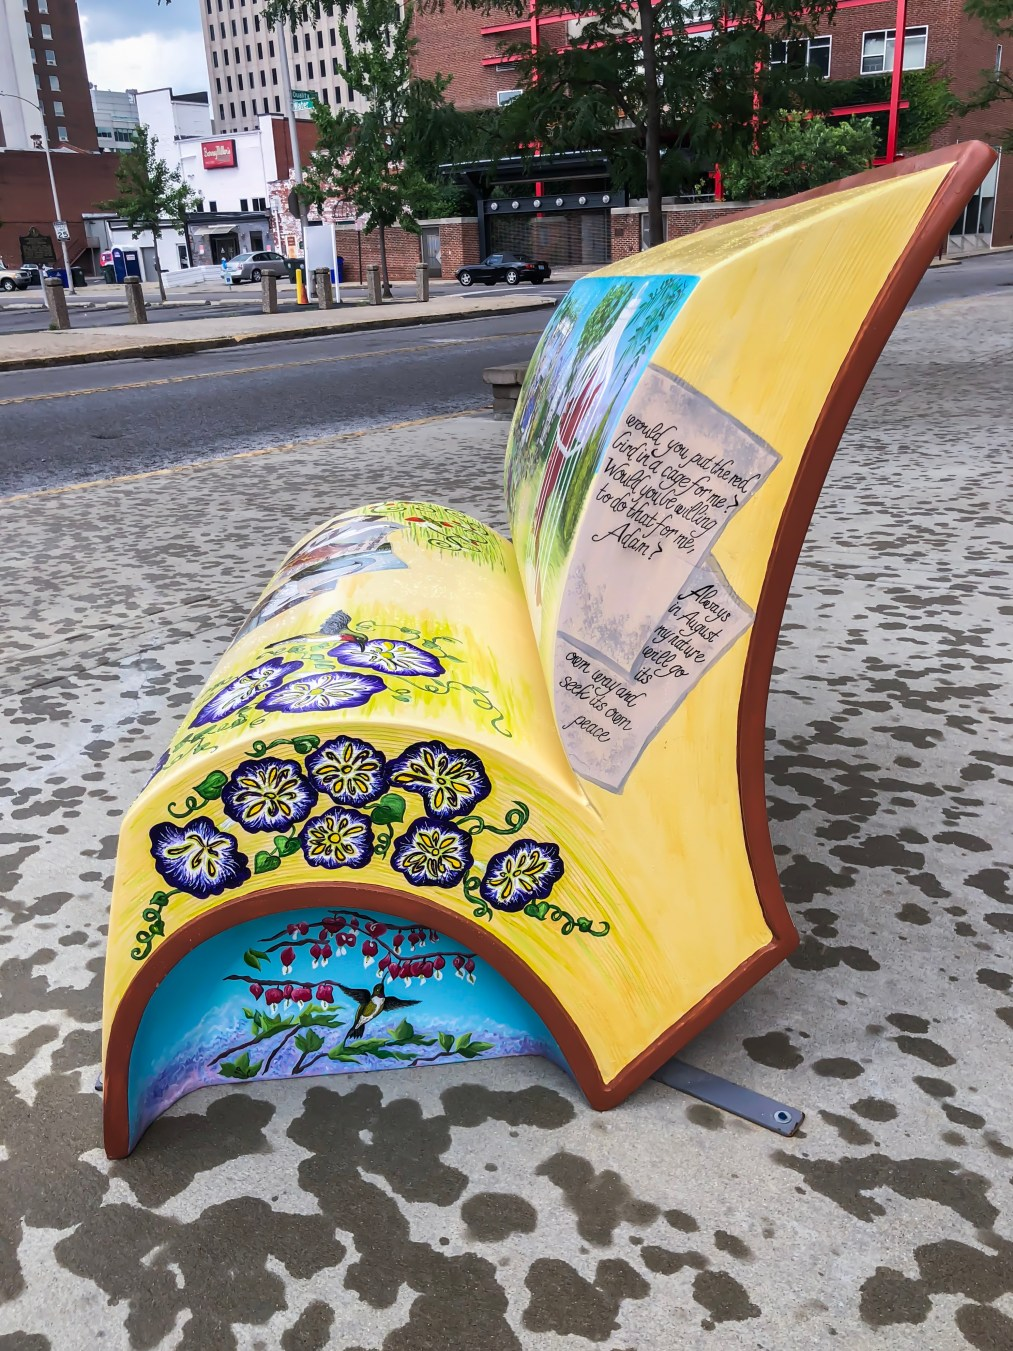 In the summer of 2018, Arts Connect, LexArts and The Carnegie Center for Literacy and Learning has made Lexington more colorful with their collaborativeproject, Book Benches. Book Benches arethirty five book-shaped functional benches that are placed throughout downtown Lexingtonto celebrate Kentucky's literary heritage, to encourage reading, and provide a place for rest. Each bench is illustrated and themed around different works by Kentucky authors and will remain on display for the duration of the summer. #sharethelex #art #painting #artist #author #book #lexingtonky #kentucky #visitlex #bench